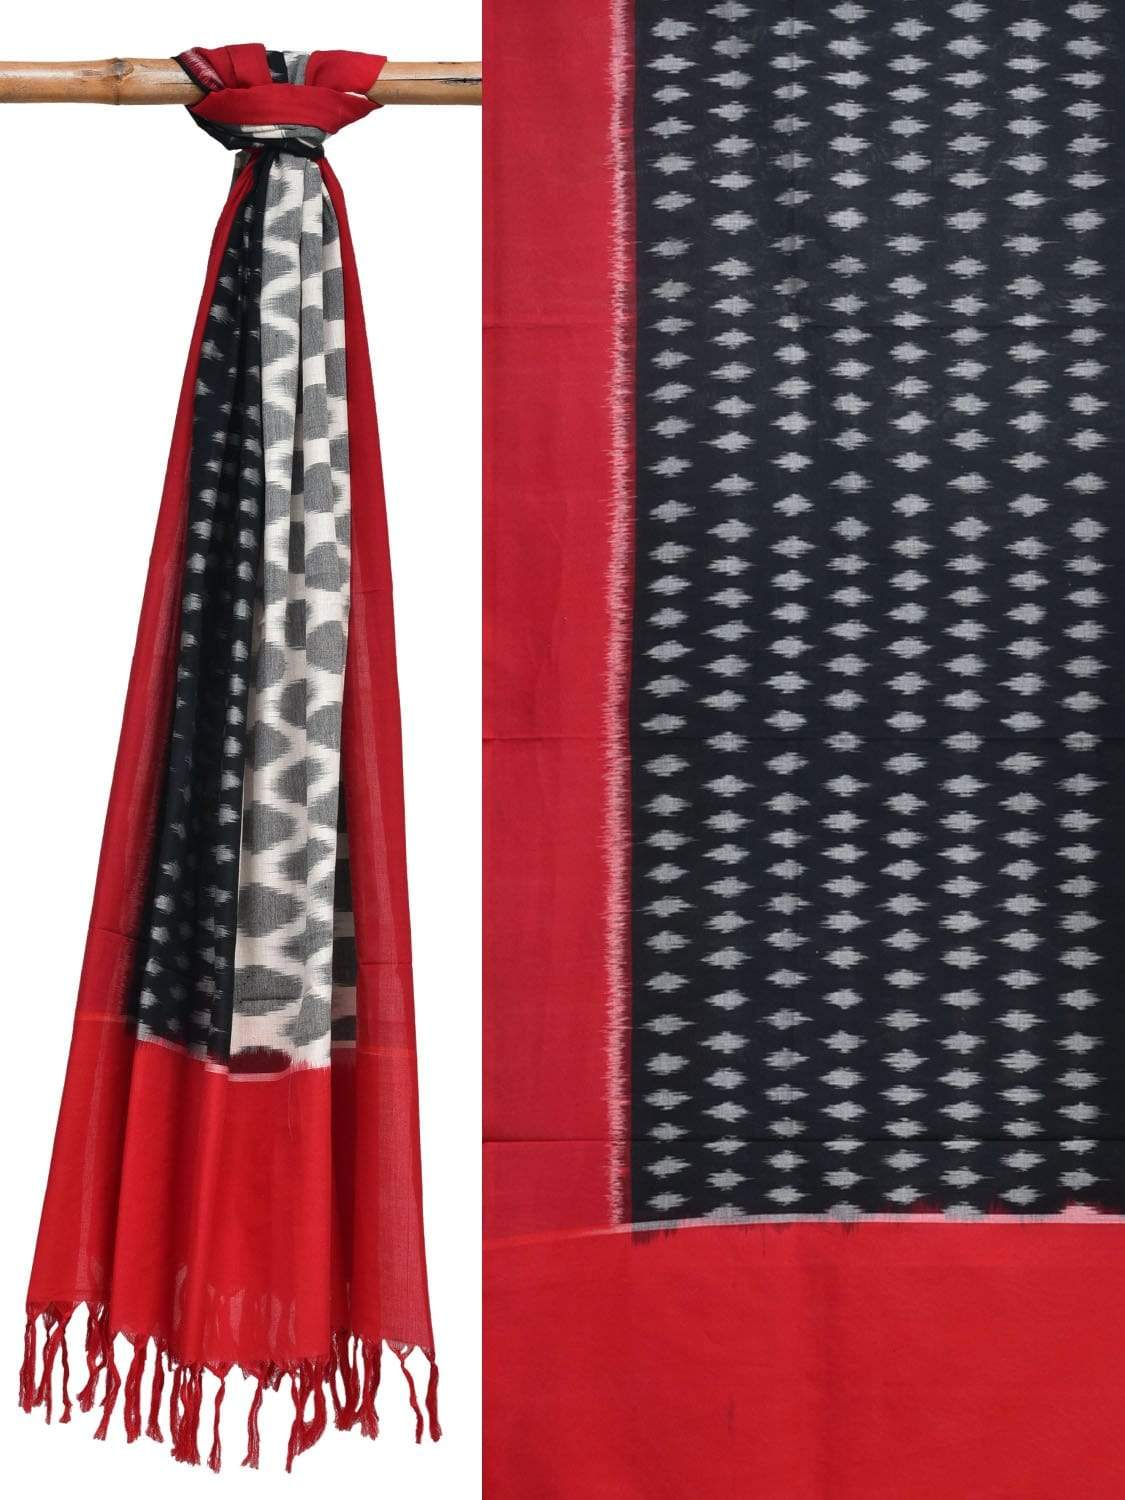 Red and Black Pochampally Ikat Cotton Handloom Dupatta with Half and Half Design ds1891